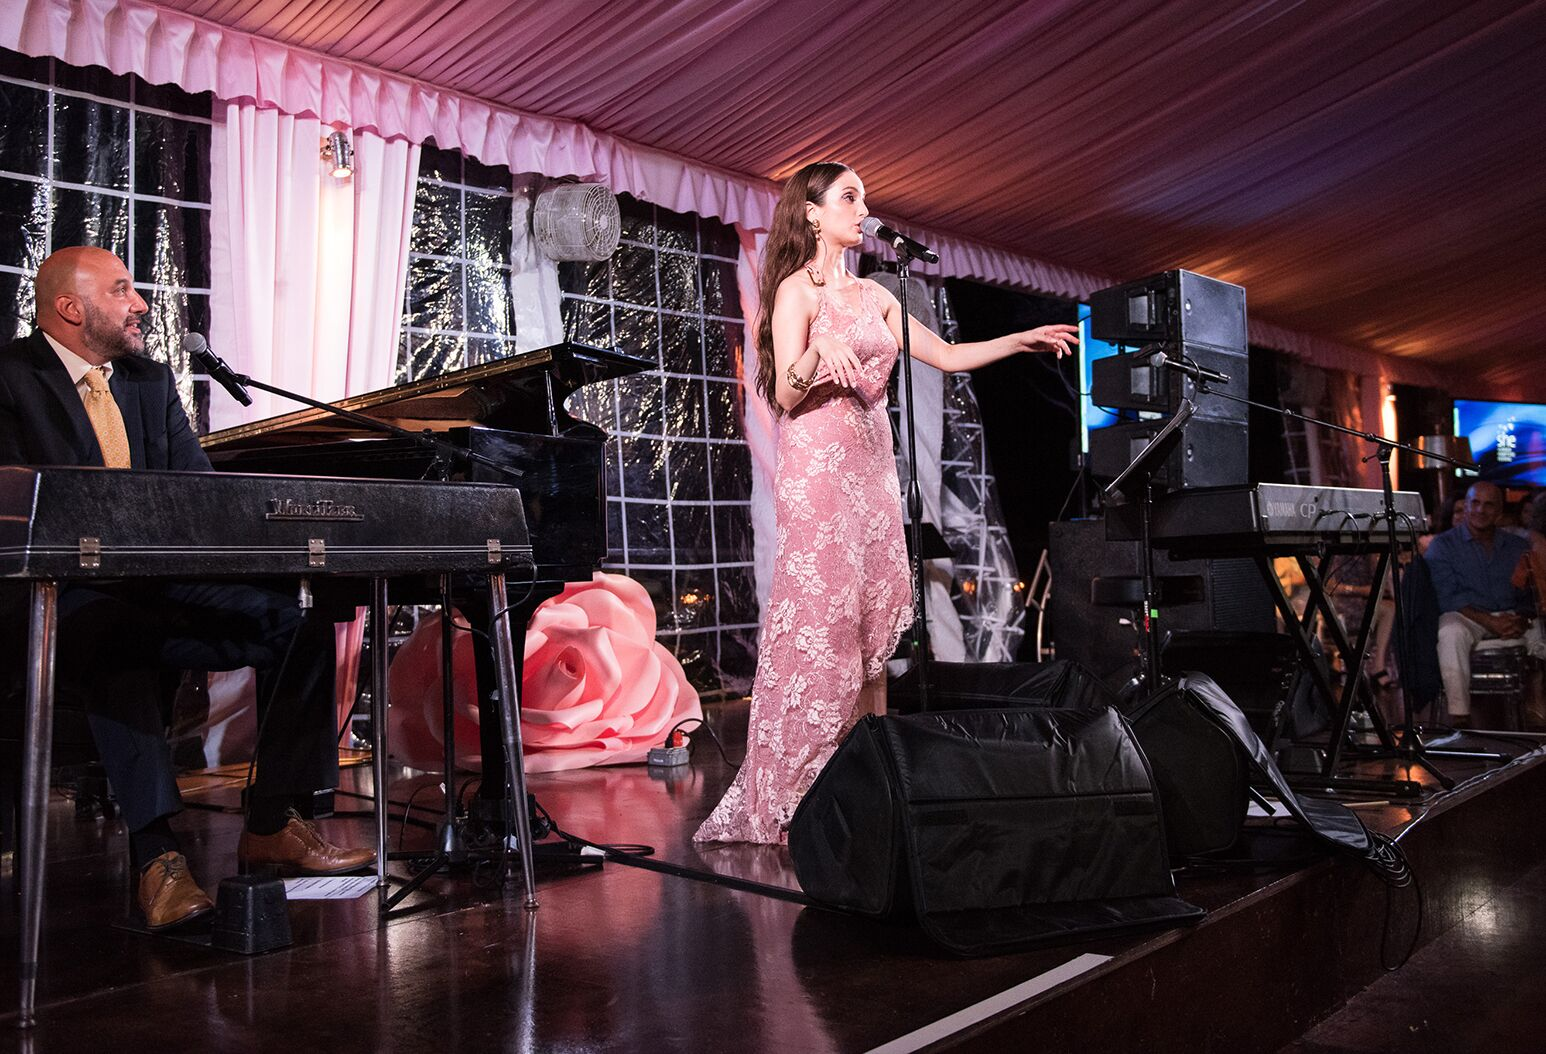 Alexa Ray Joel performs at Northwell Health's Summer Hamptons Evening on August 17 in Water Mill to benefit Northwell's Katz Institute for Women's Health. Credit: Ellen Wolff Photography/Northwell Health